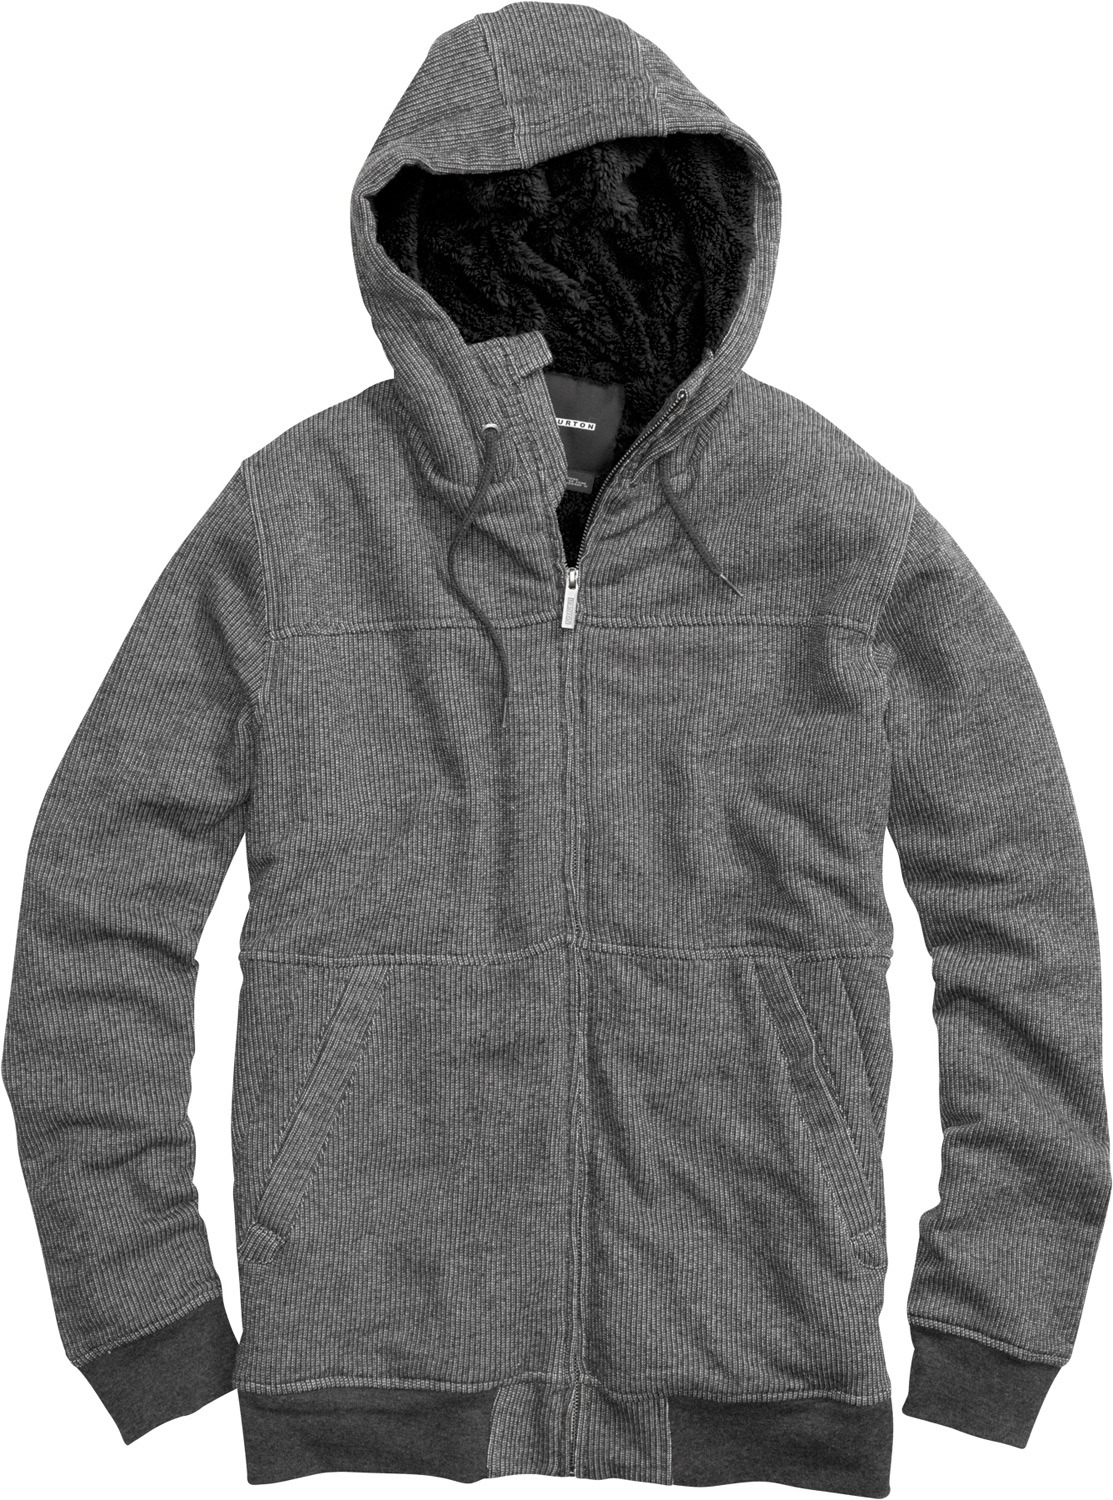 Snowboard Key Features of the Burton Pitch Fullzip Hoodie: Full-Zip Paneled Hoodie with Sherpa Fleece Lining Drop Needle French Terry 60% Cotton, 40% Polyester Sig Fit - $54.95